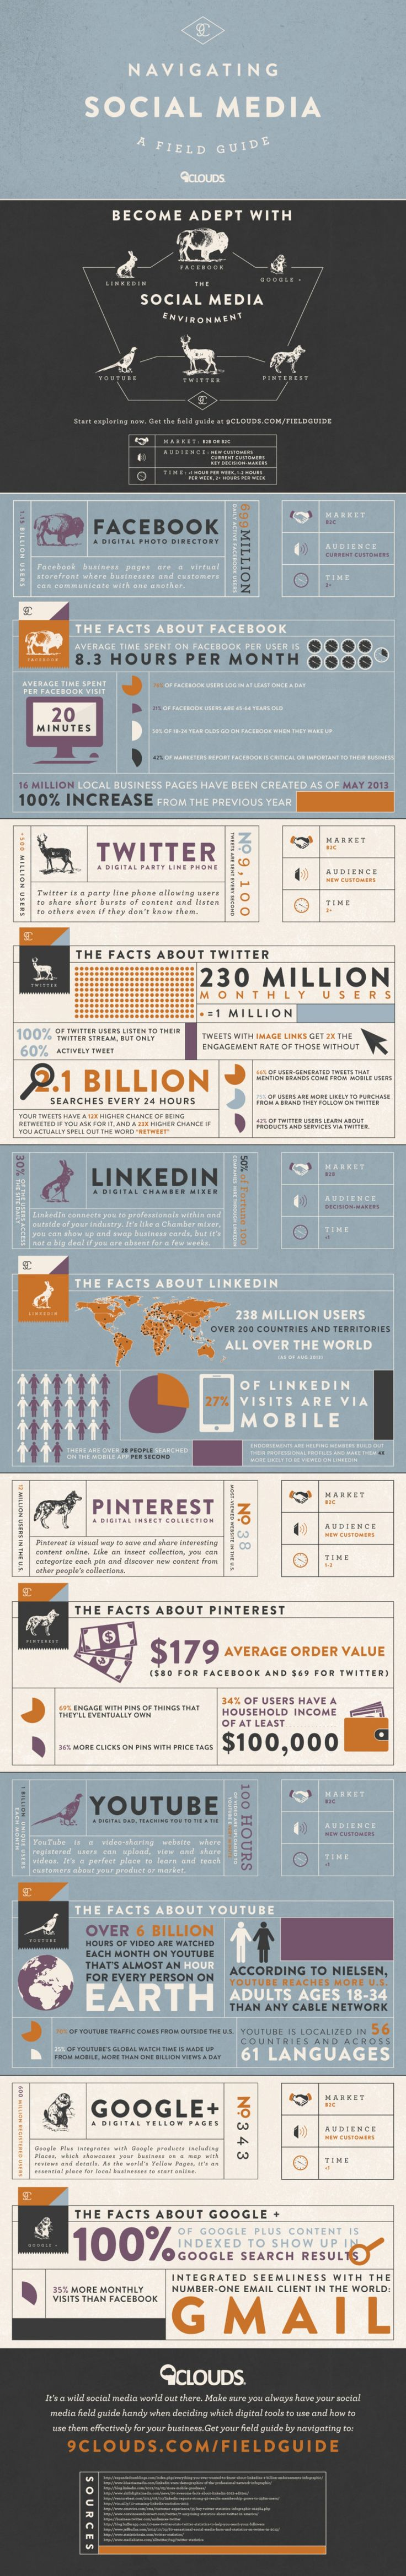 Navigating Social Media: A Field Guide  –Lots of great stats in this #Infographic